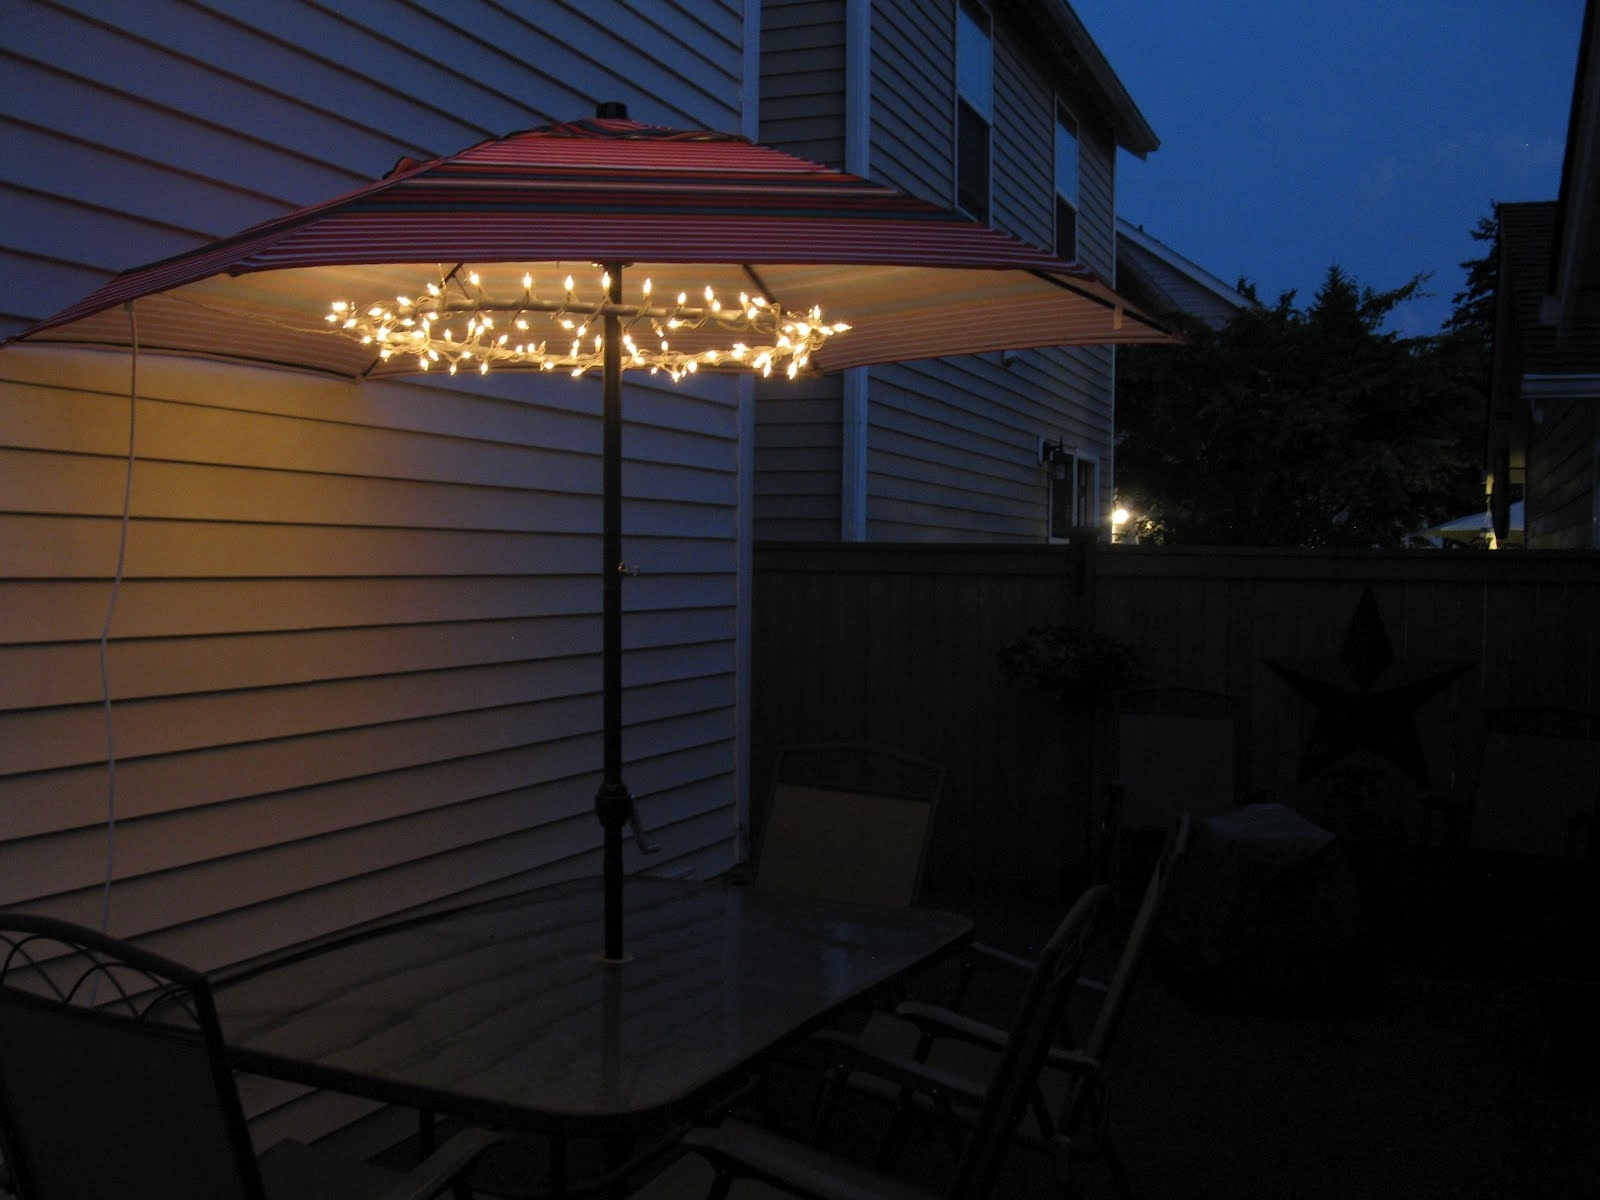 Great Patio Umbrellas With Lights Patio Umbrella Lights For The Pertaining To Outdoor Umbrella Lanterns (View 7 of 20)